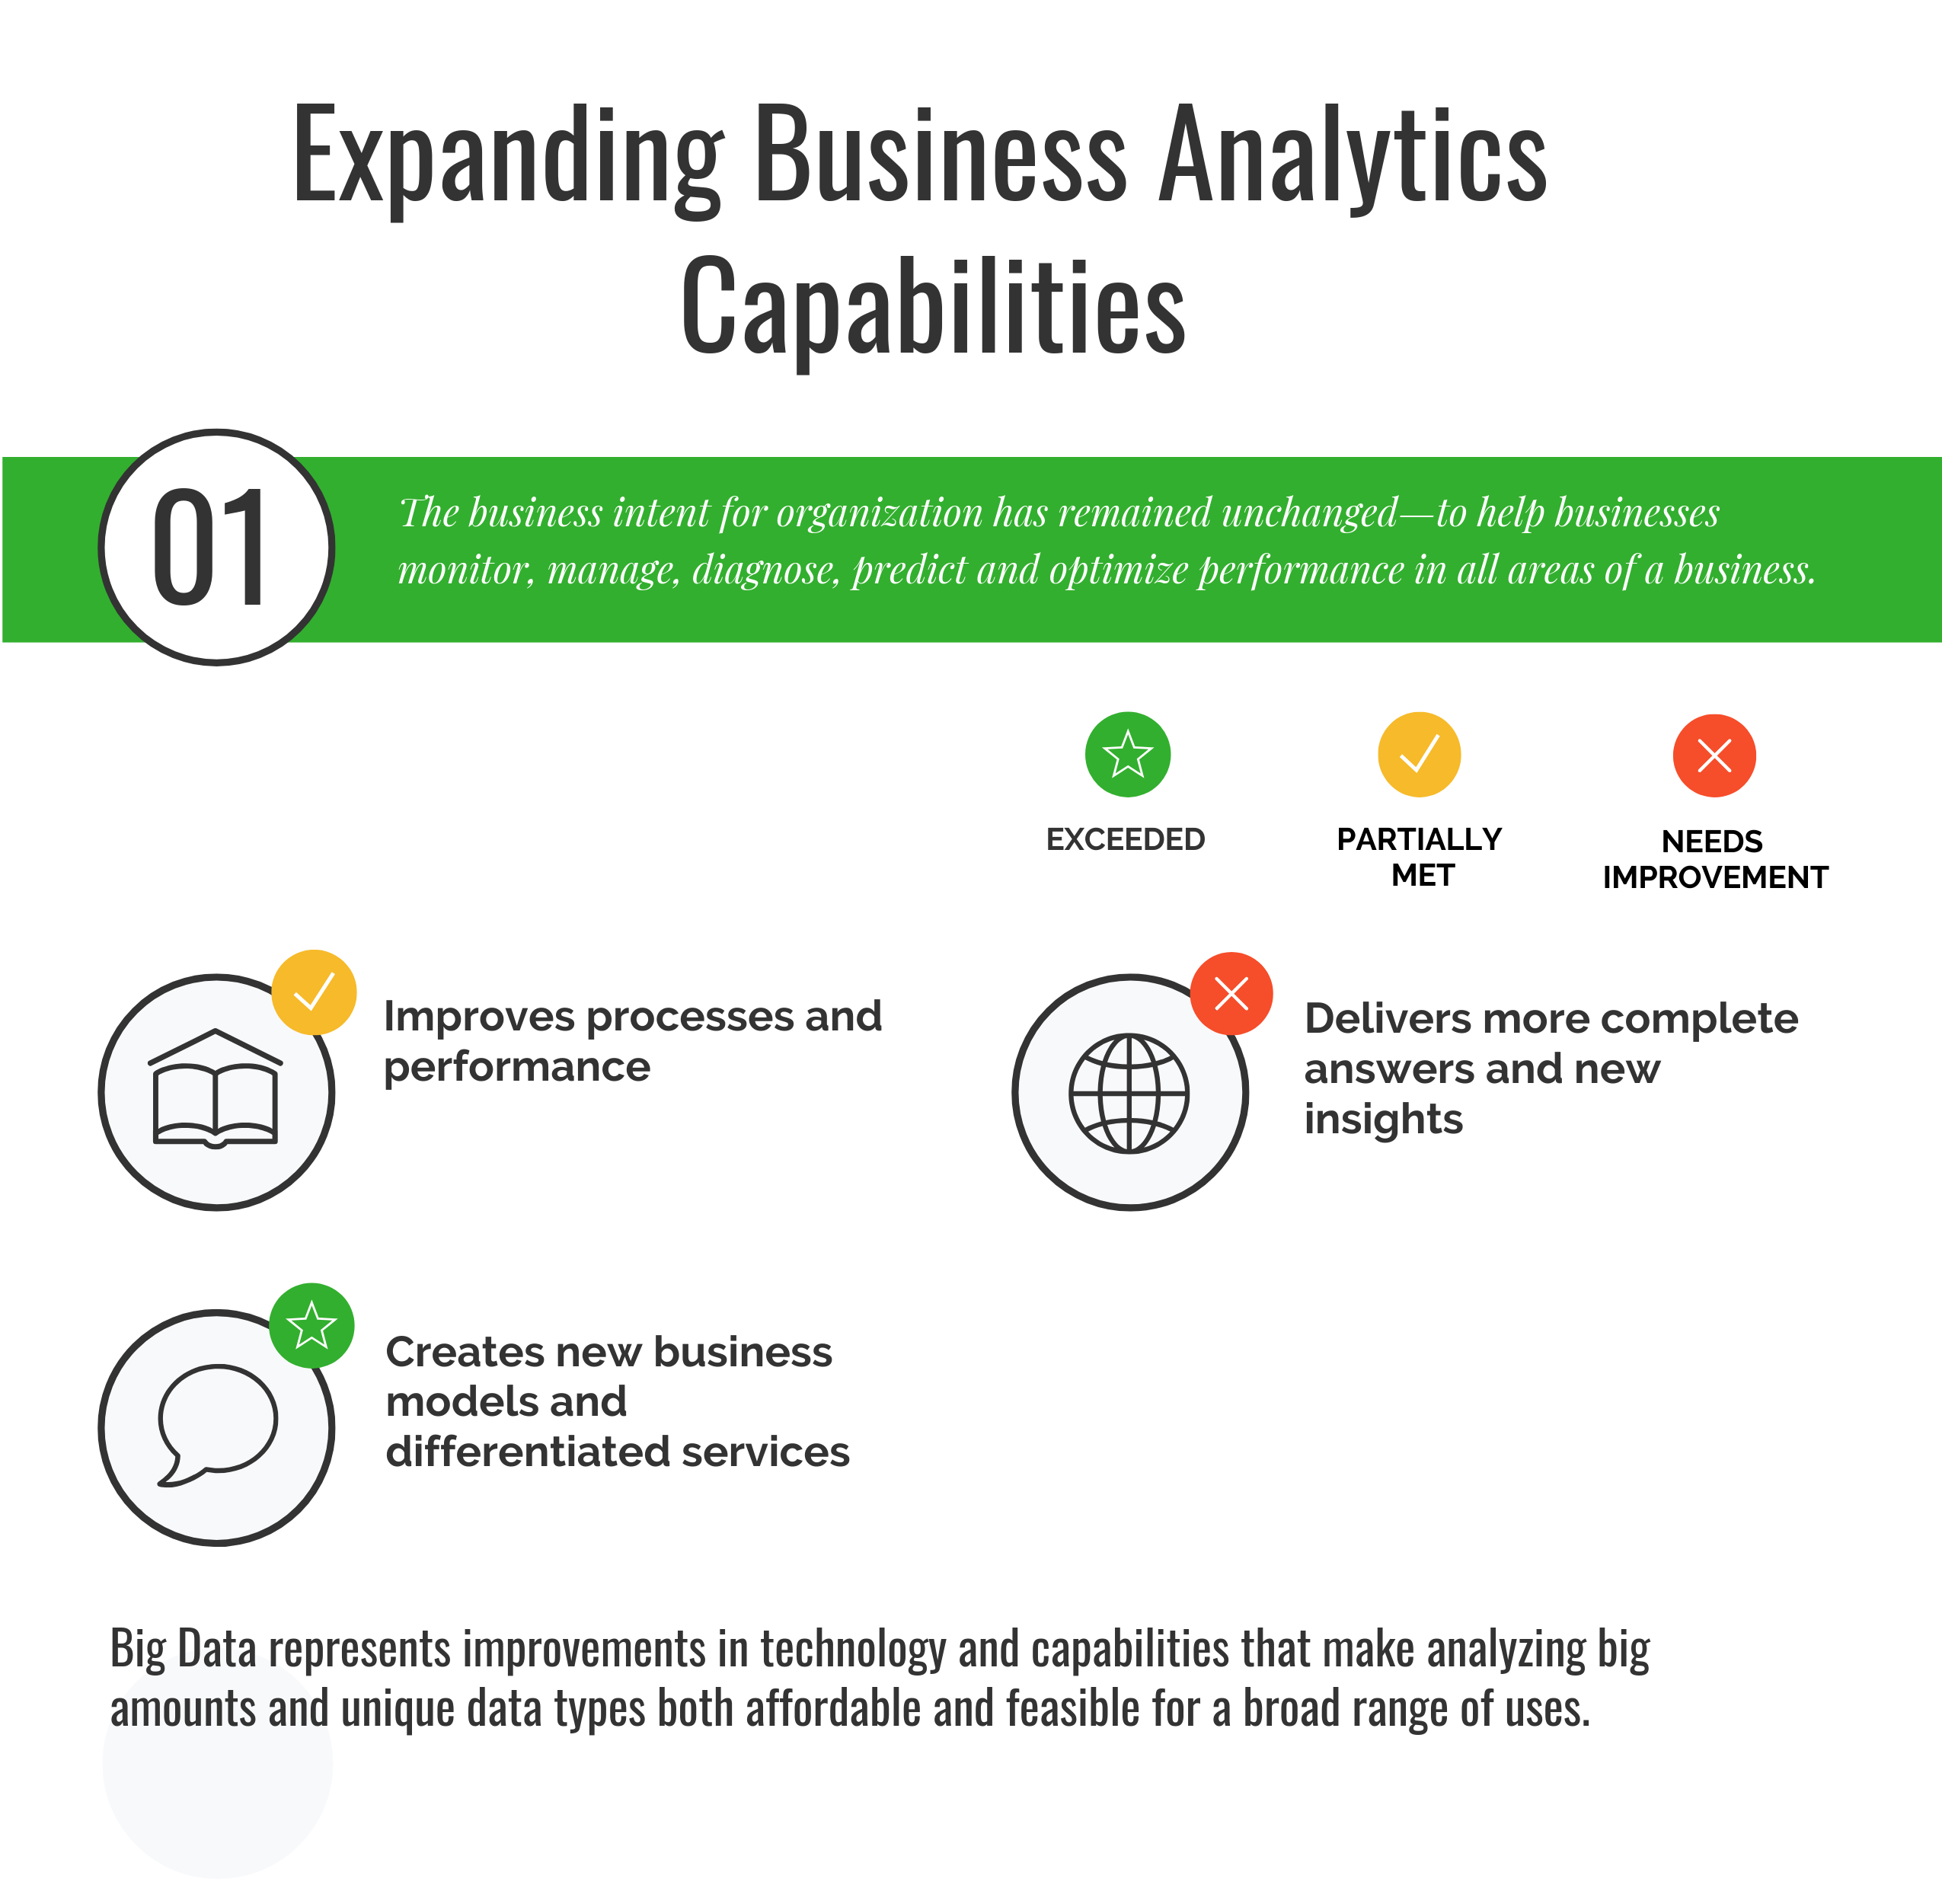 How Big Data Expands Business Analytics Capabilities